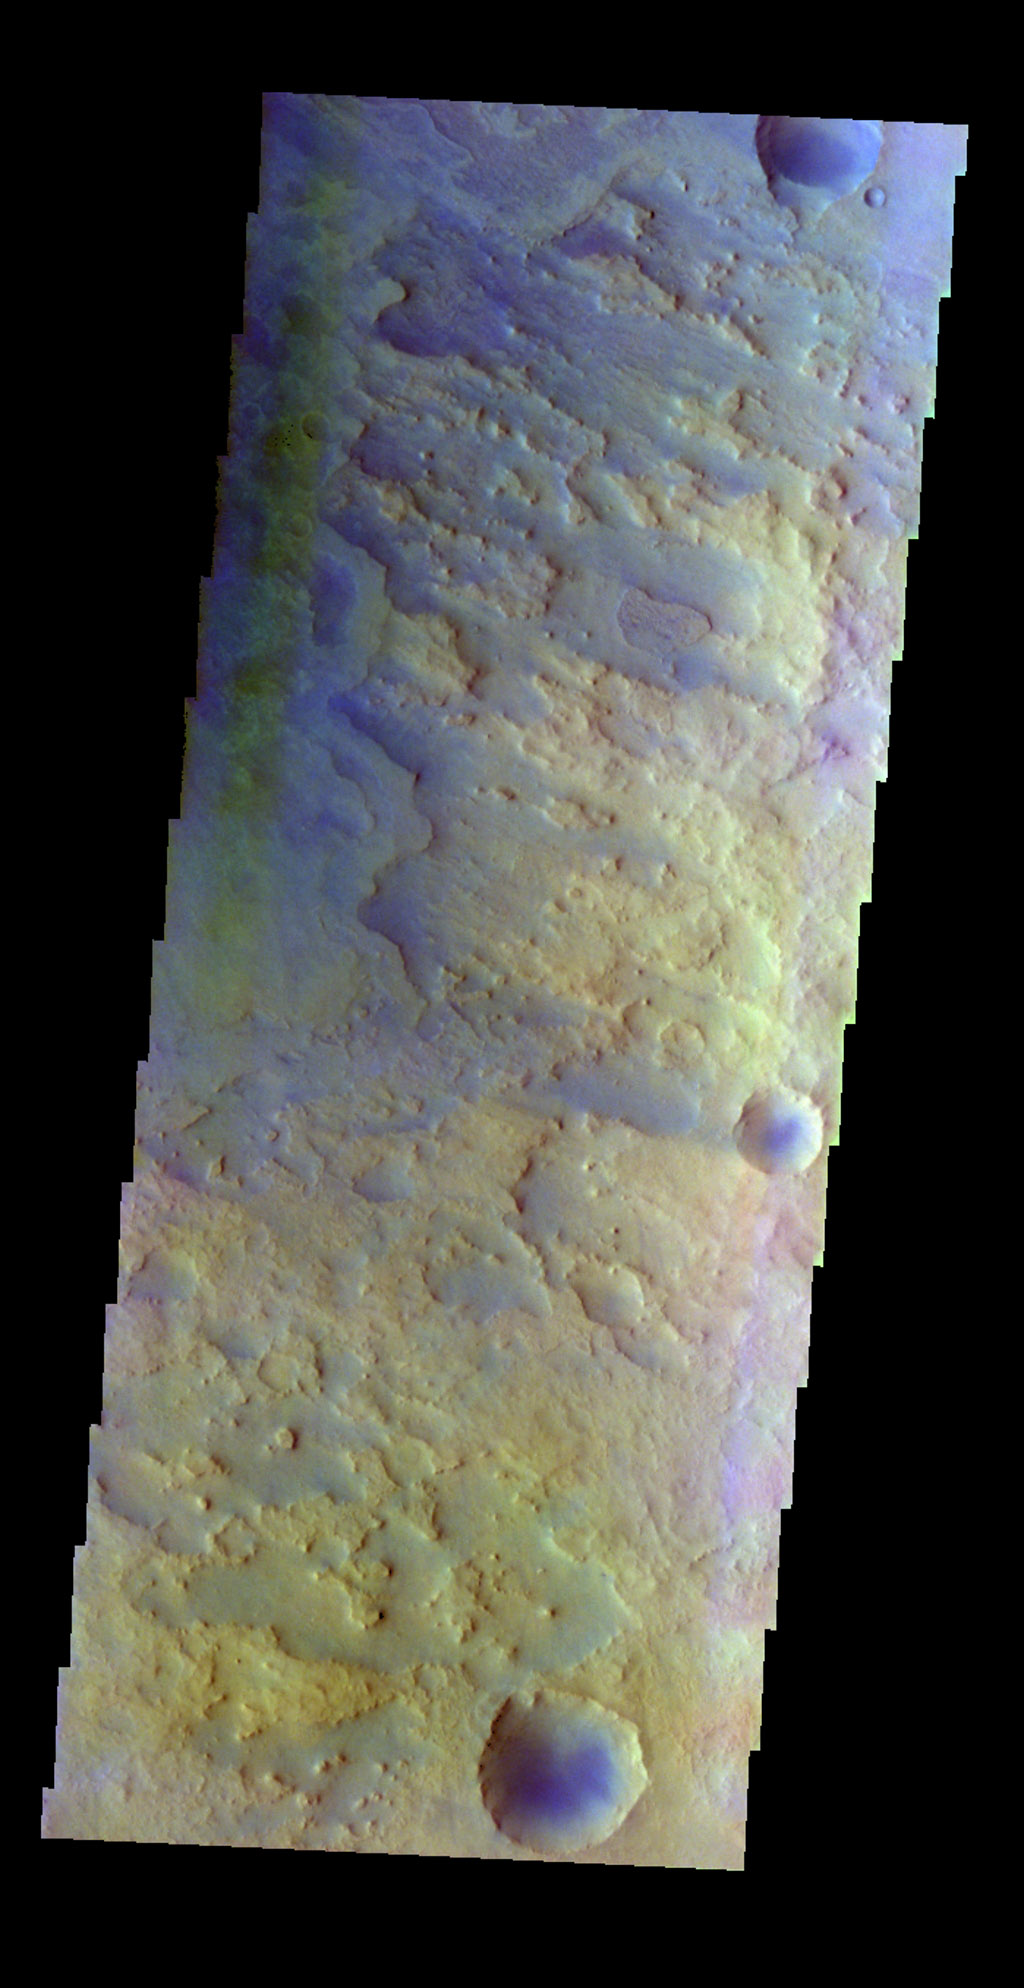 The THEMIS VIS camera contains 5 filters. The data from different filters can be combined in multiple ways to create a false color image. This false color image from NASA's 2001 Mars Odyssey spacecraft shows part of the floor of Antoniadi Crater.